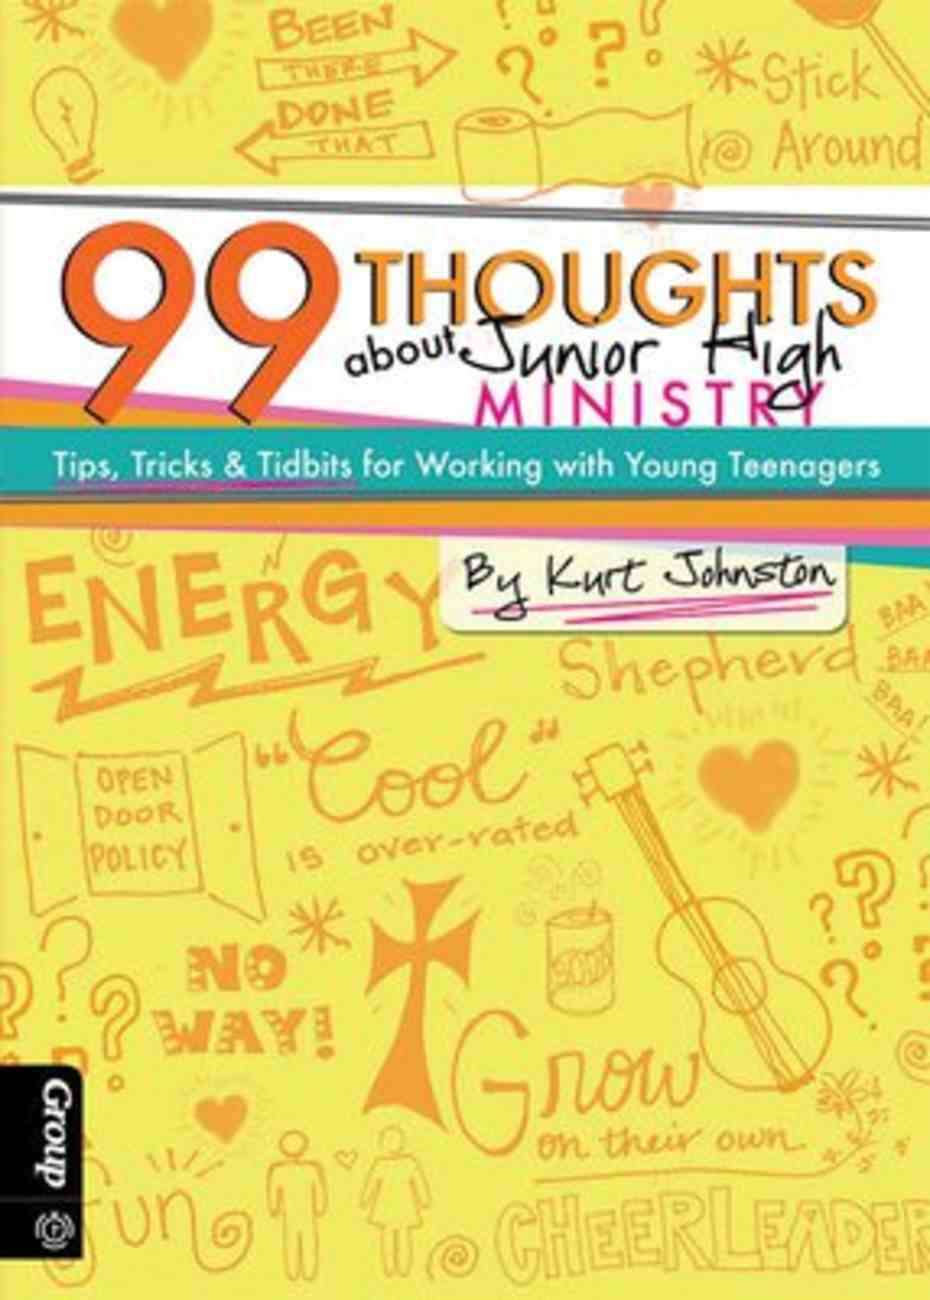 99 Thoughts About Junior High Ministry: Tips, Tricks & Tidbits For Working With Young Teenagers Paperback